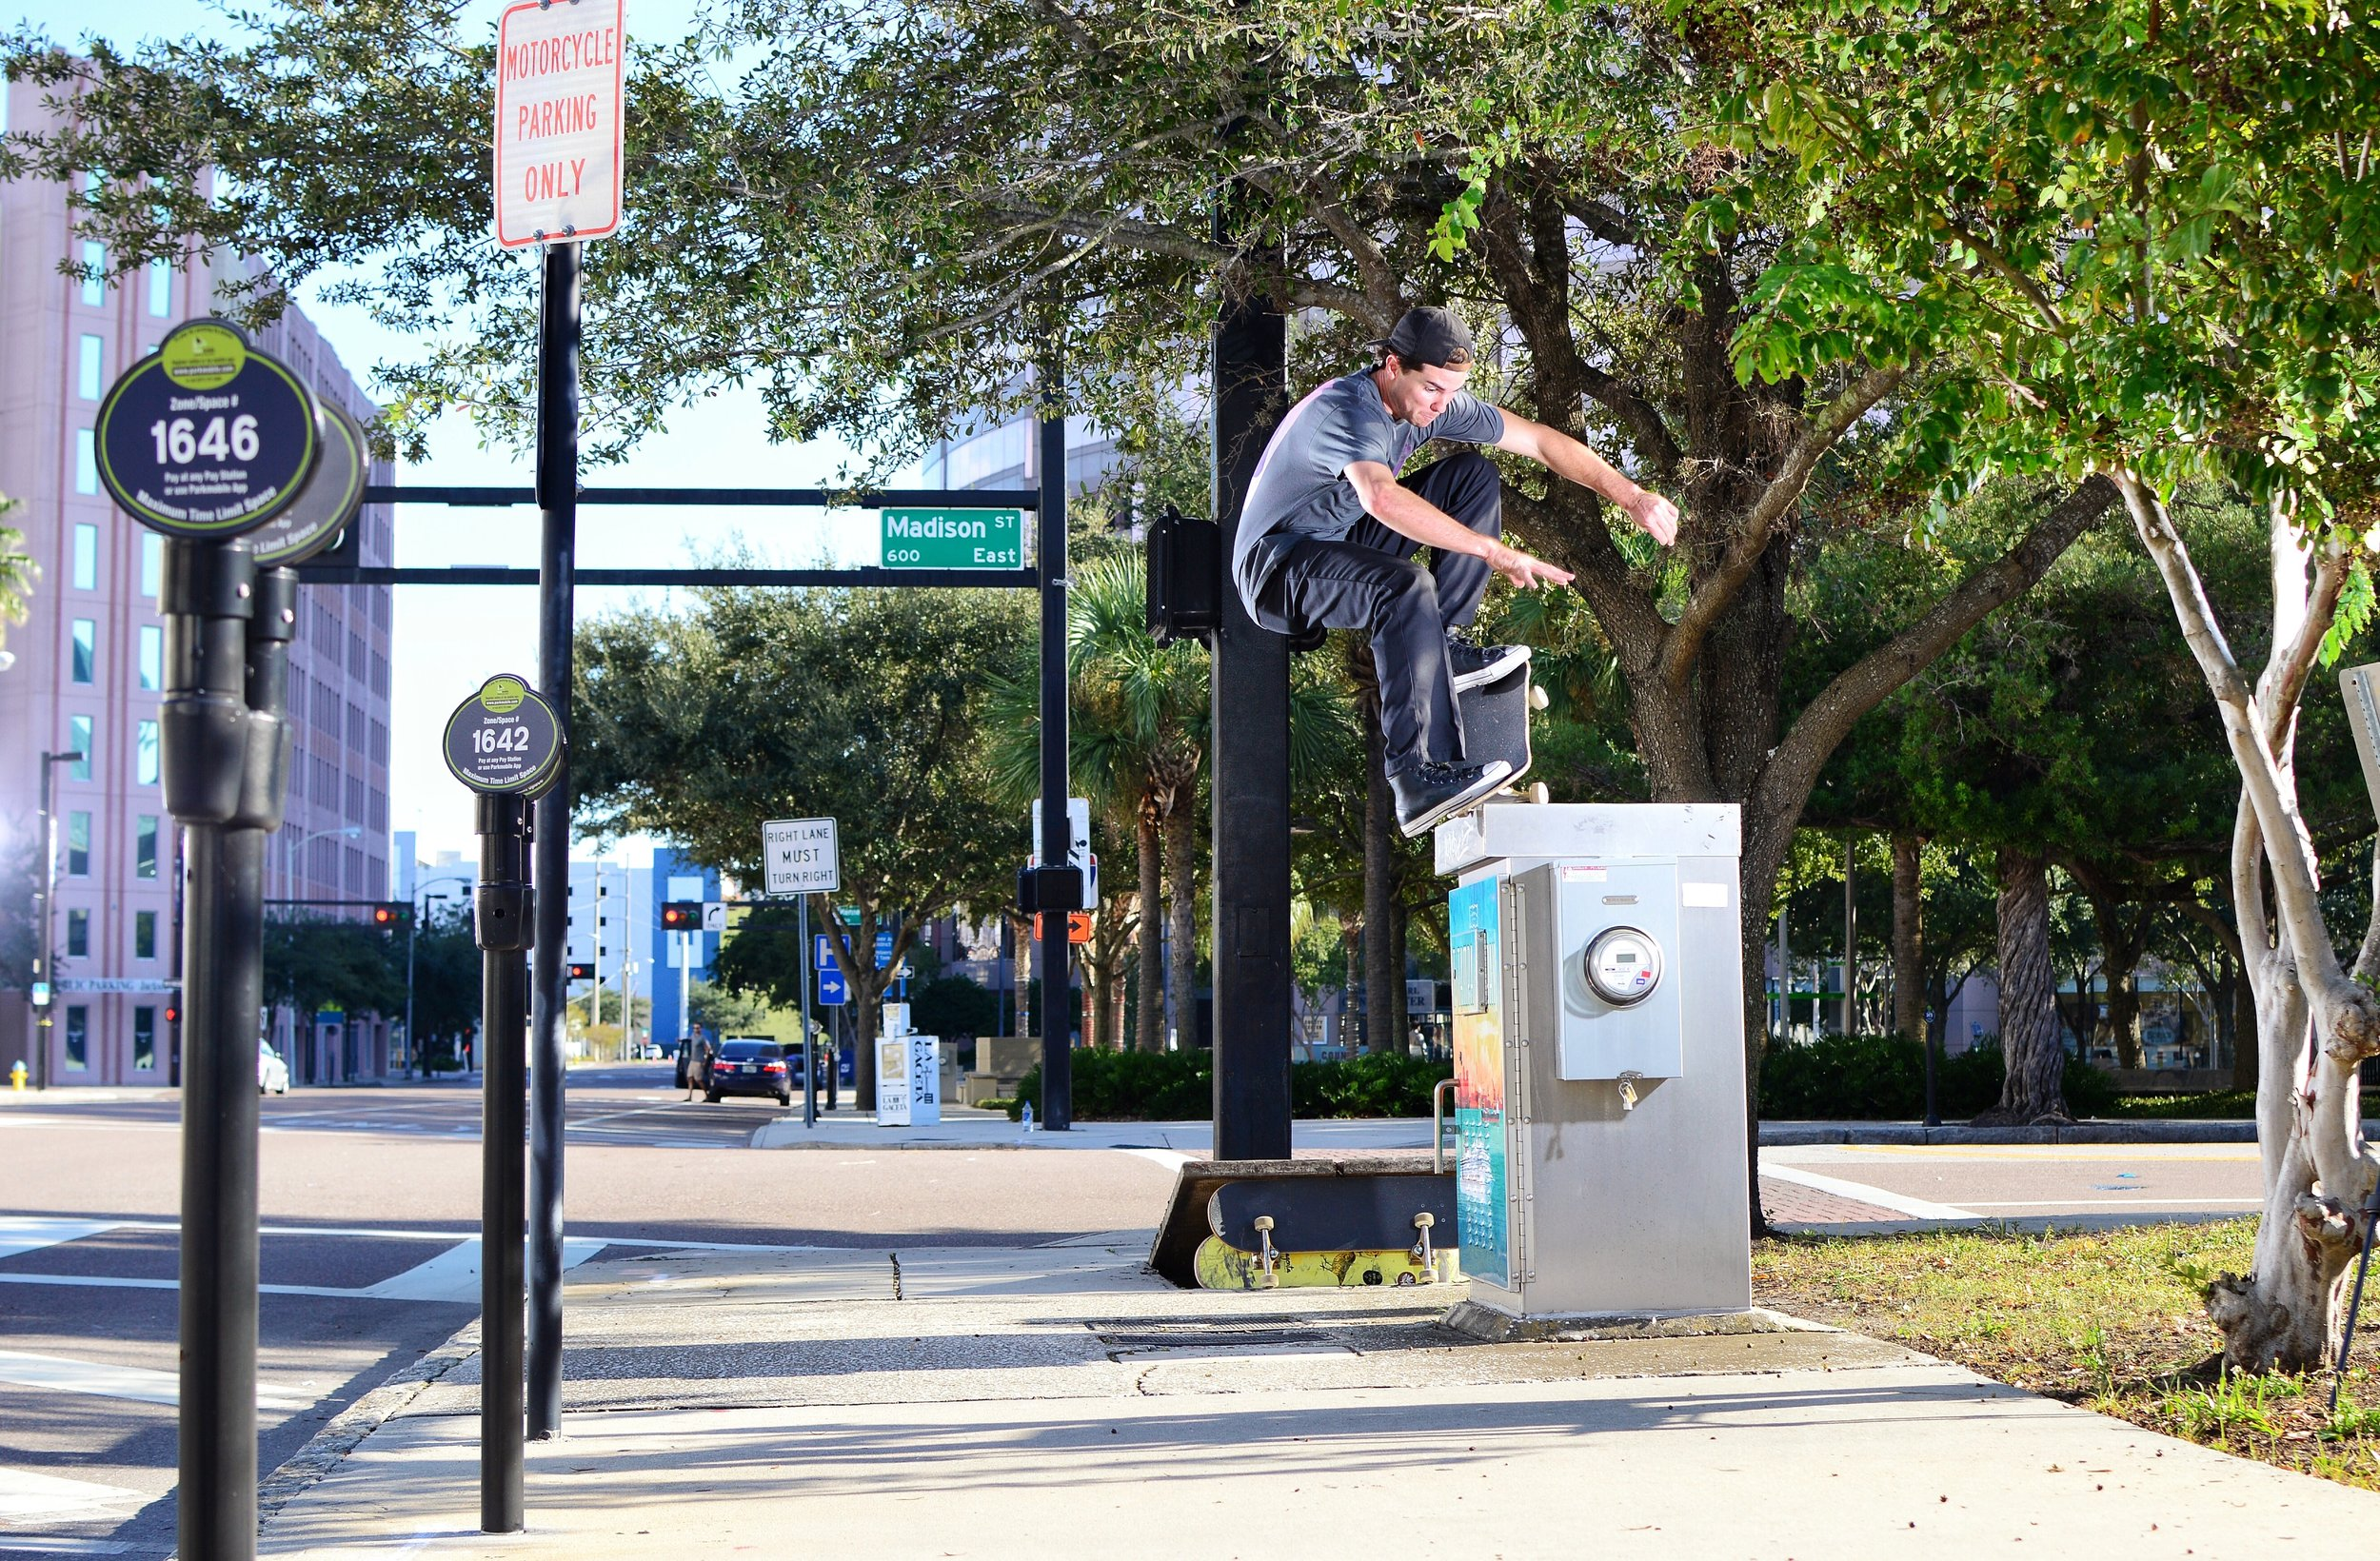 Jimmy Mastrocolo - Bump to F/S nosegrind, downtown Tampa / Photo: Chaz Miley